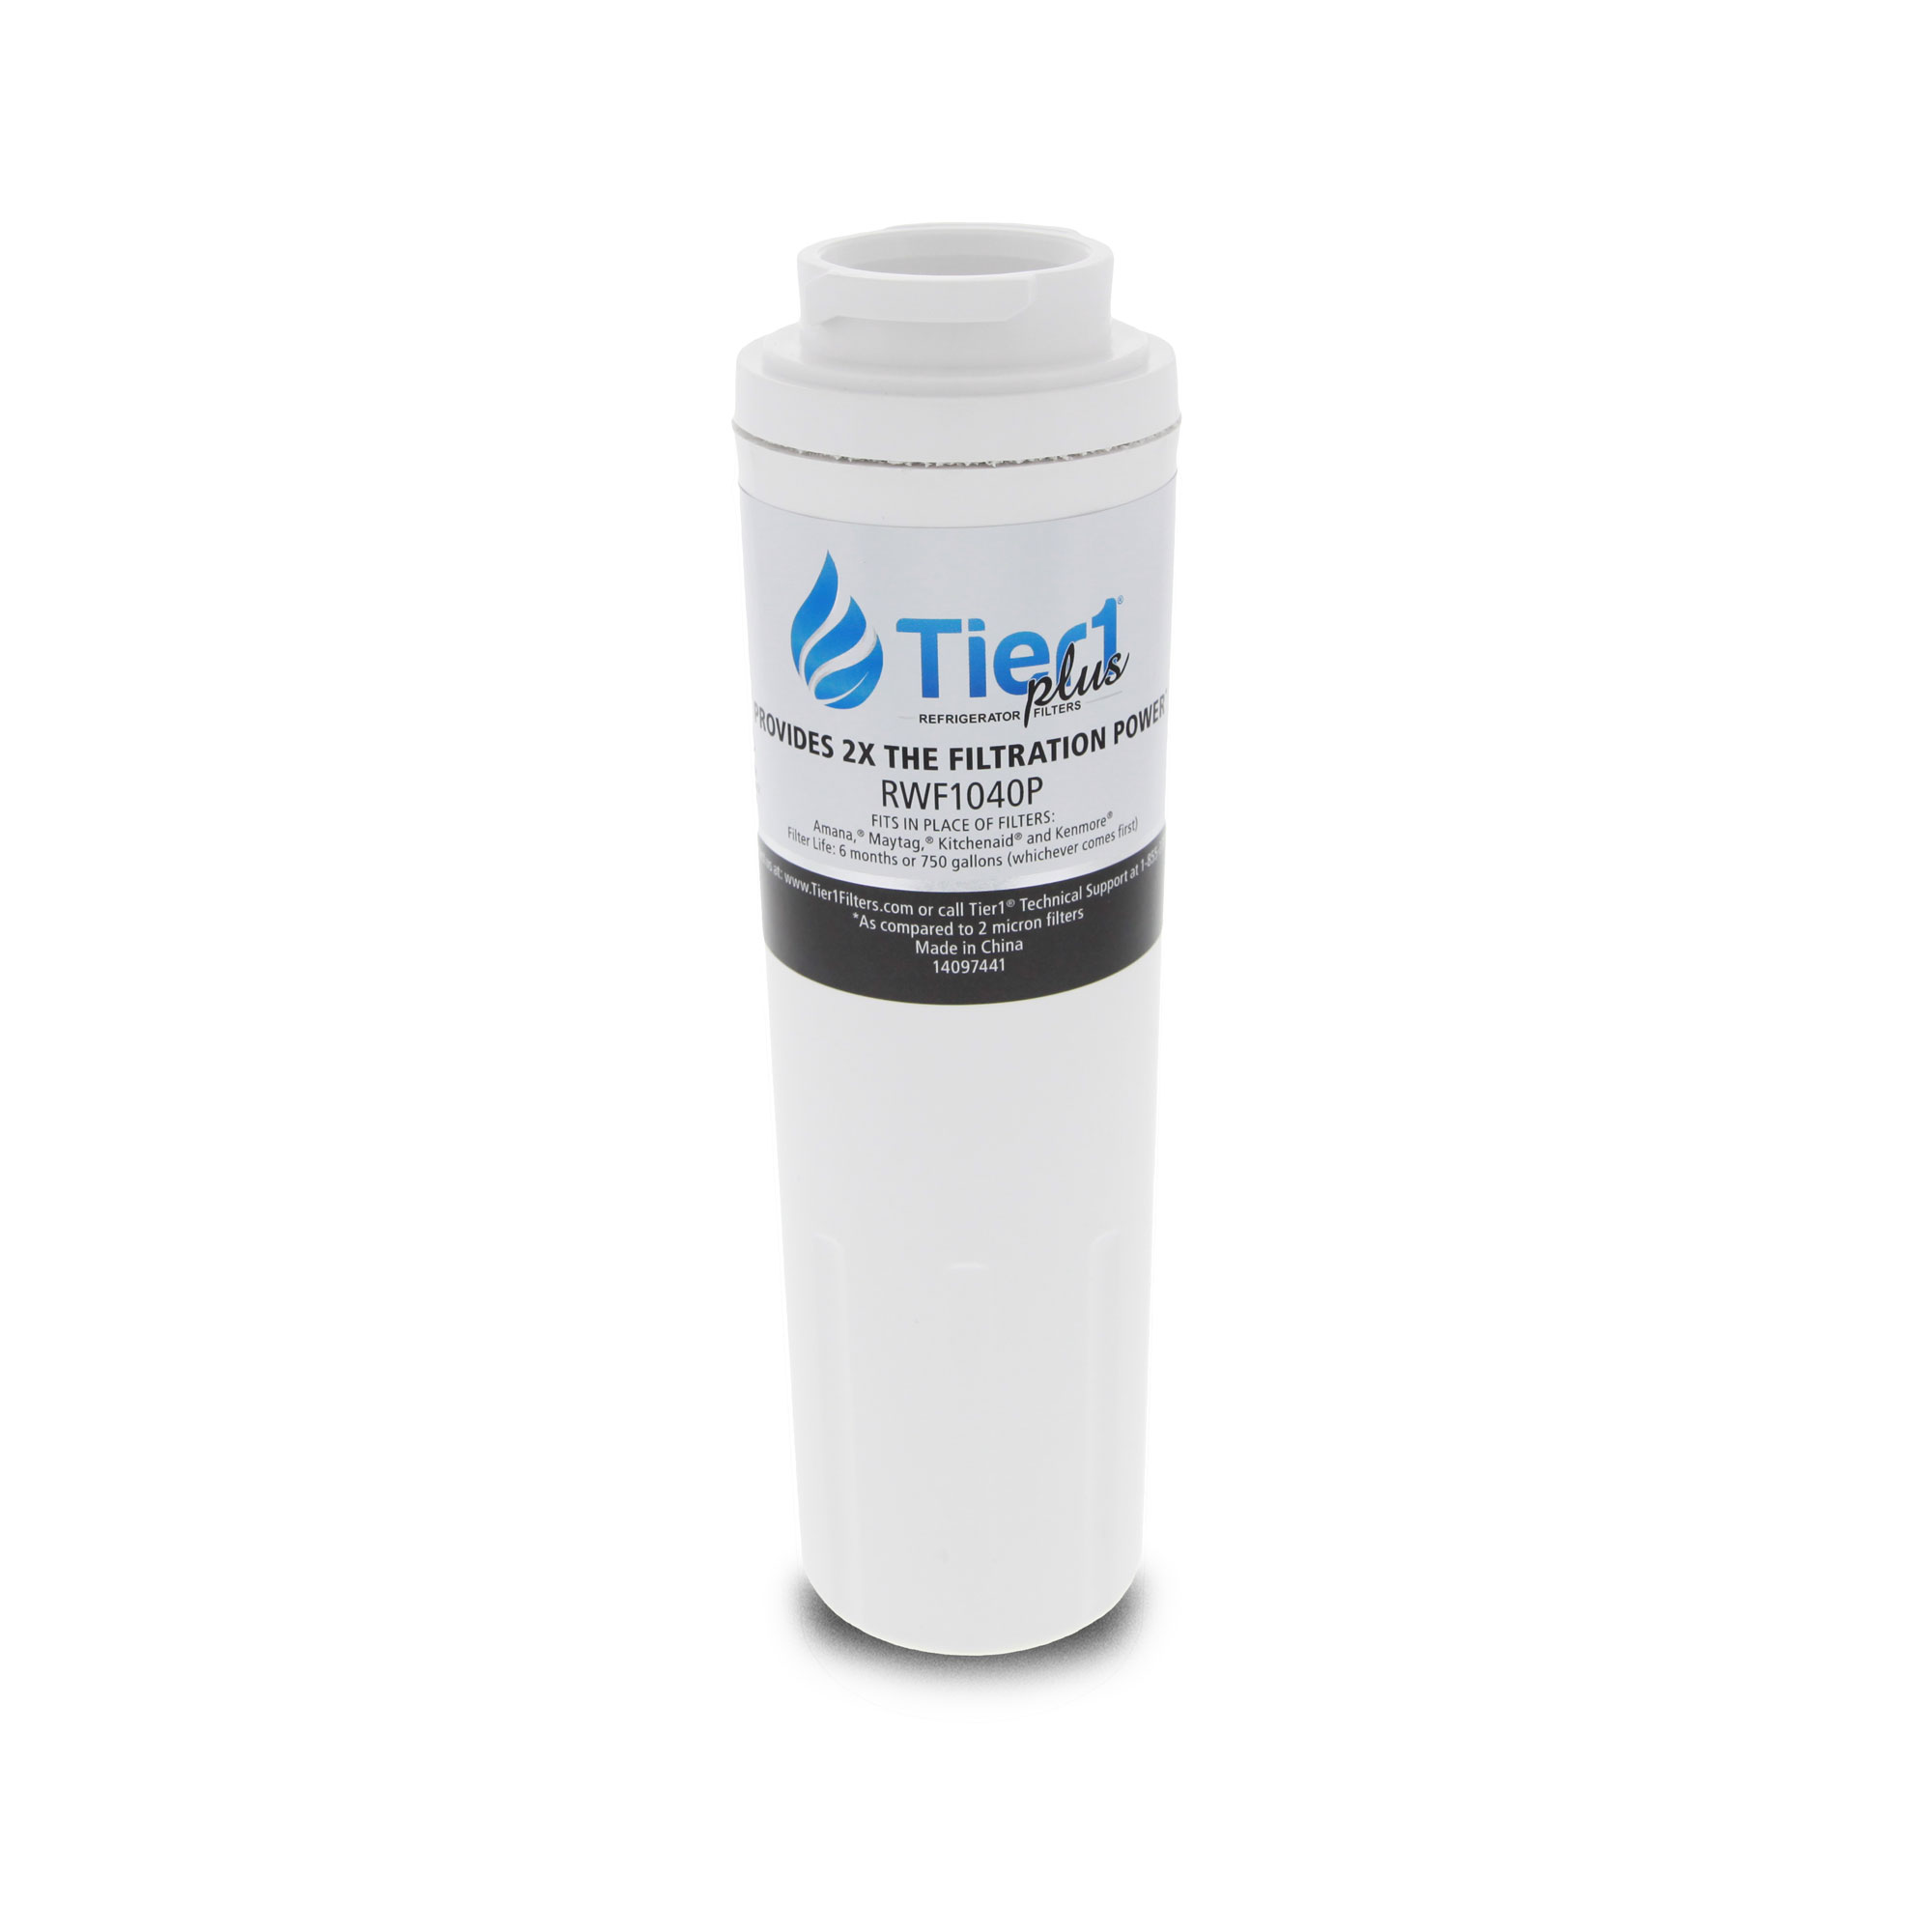 EDR4RXD1 EveryDrop UKF8001 Maytag Comparable Refrigerator Water Filter Replacement By Tier1 TIER1_RWF1040_TY